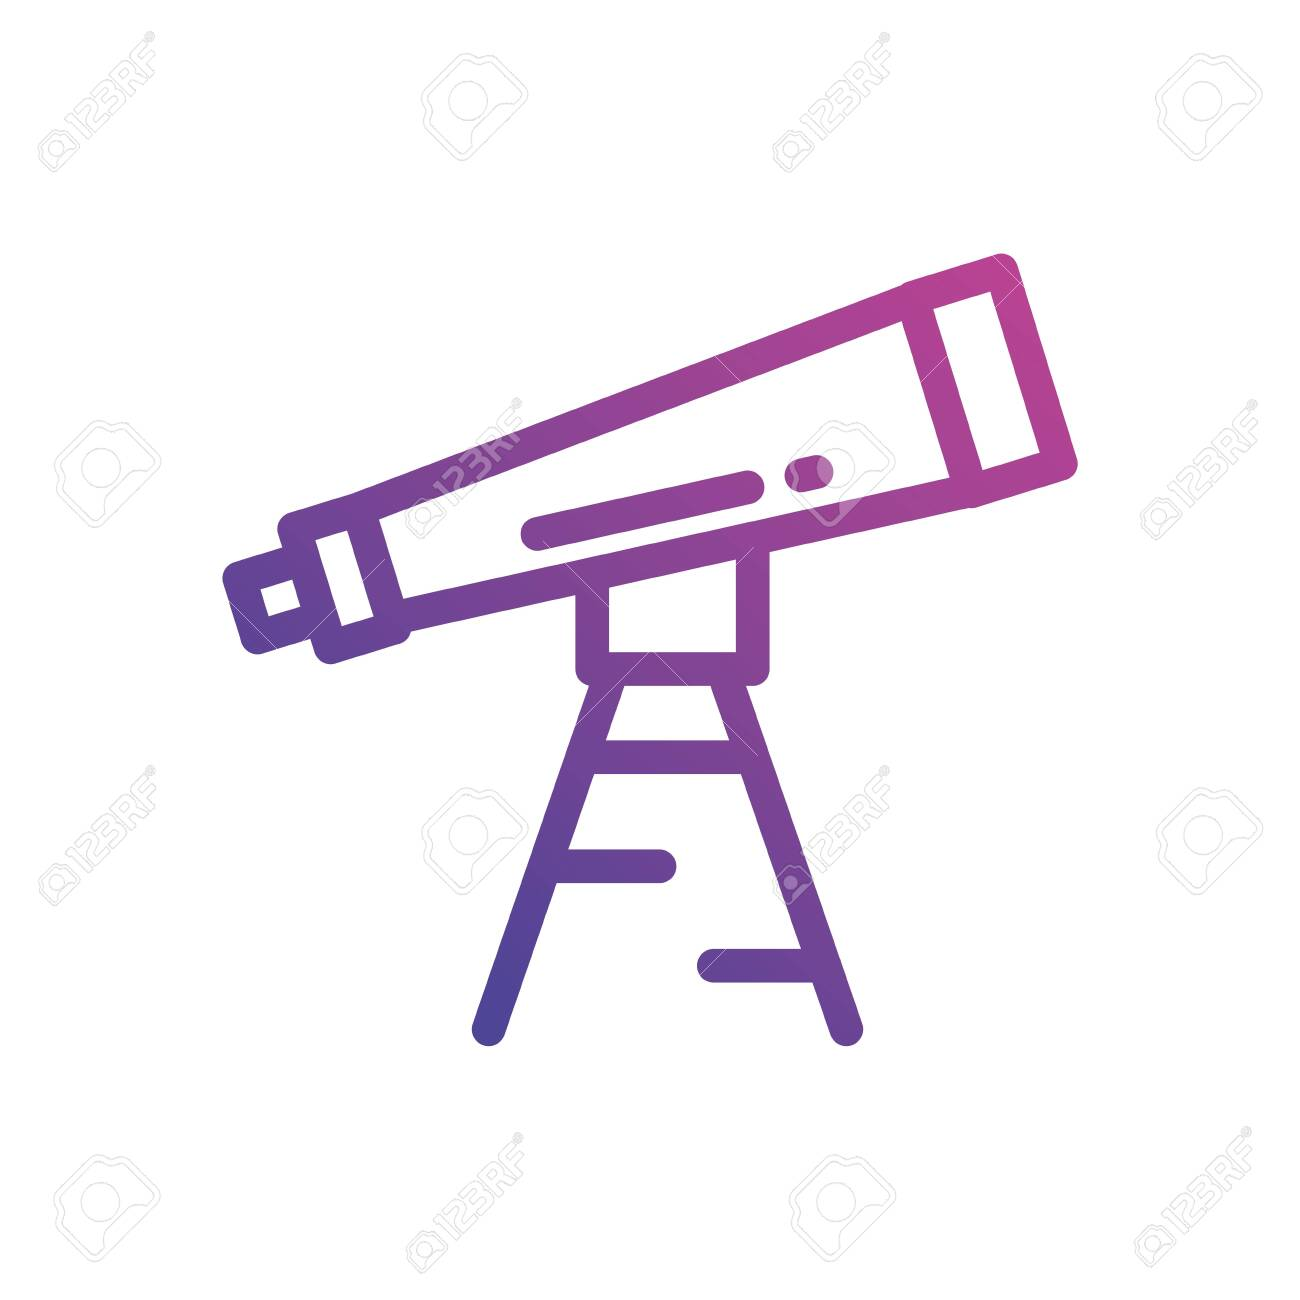 Telescope Icon Design Science Discovery Observe Astronomy Sky Royalty Free Cliparts Vectors And Stock Illustration Image 141566277